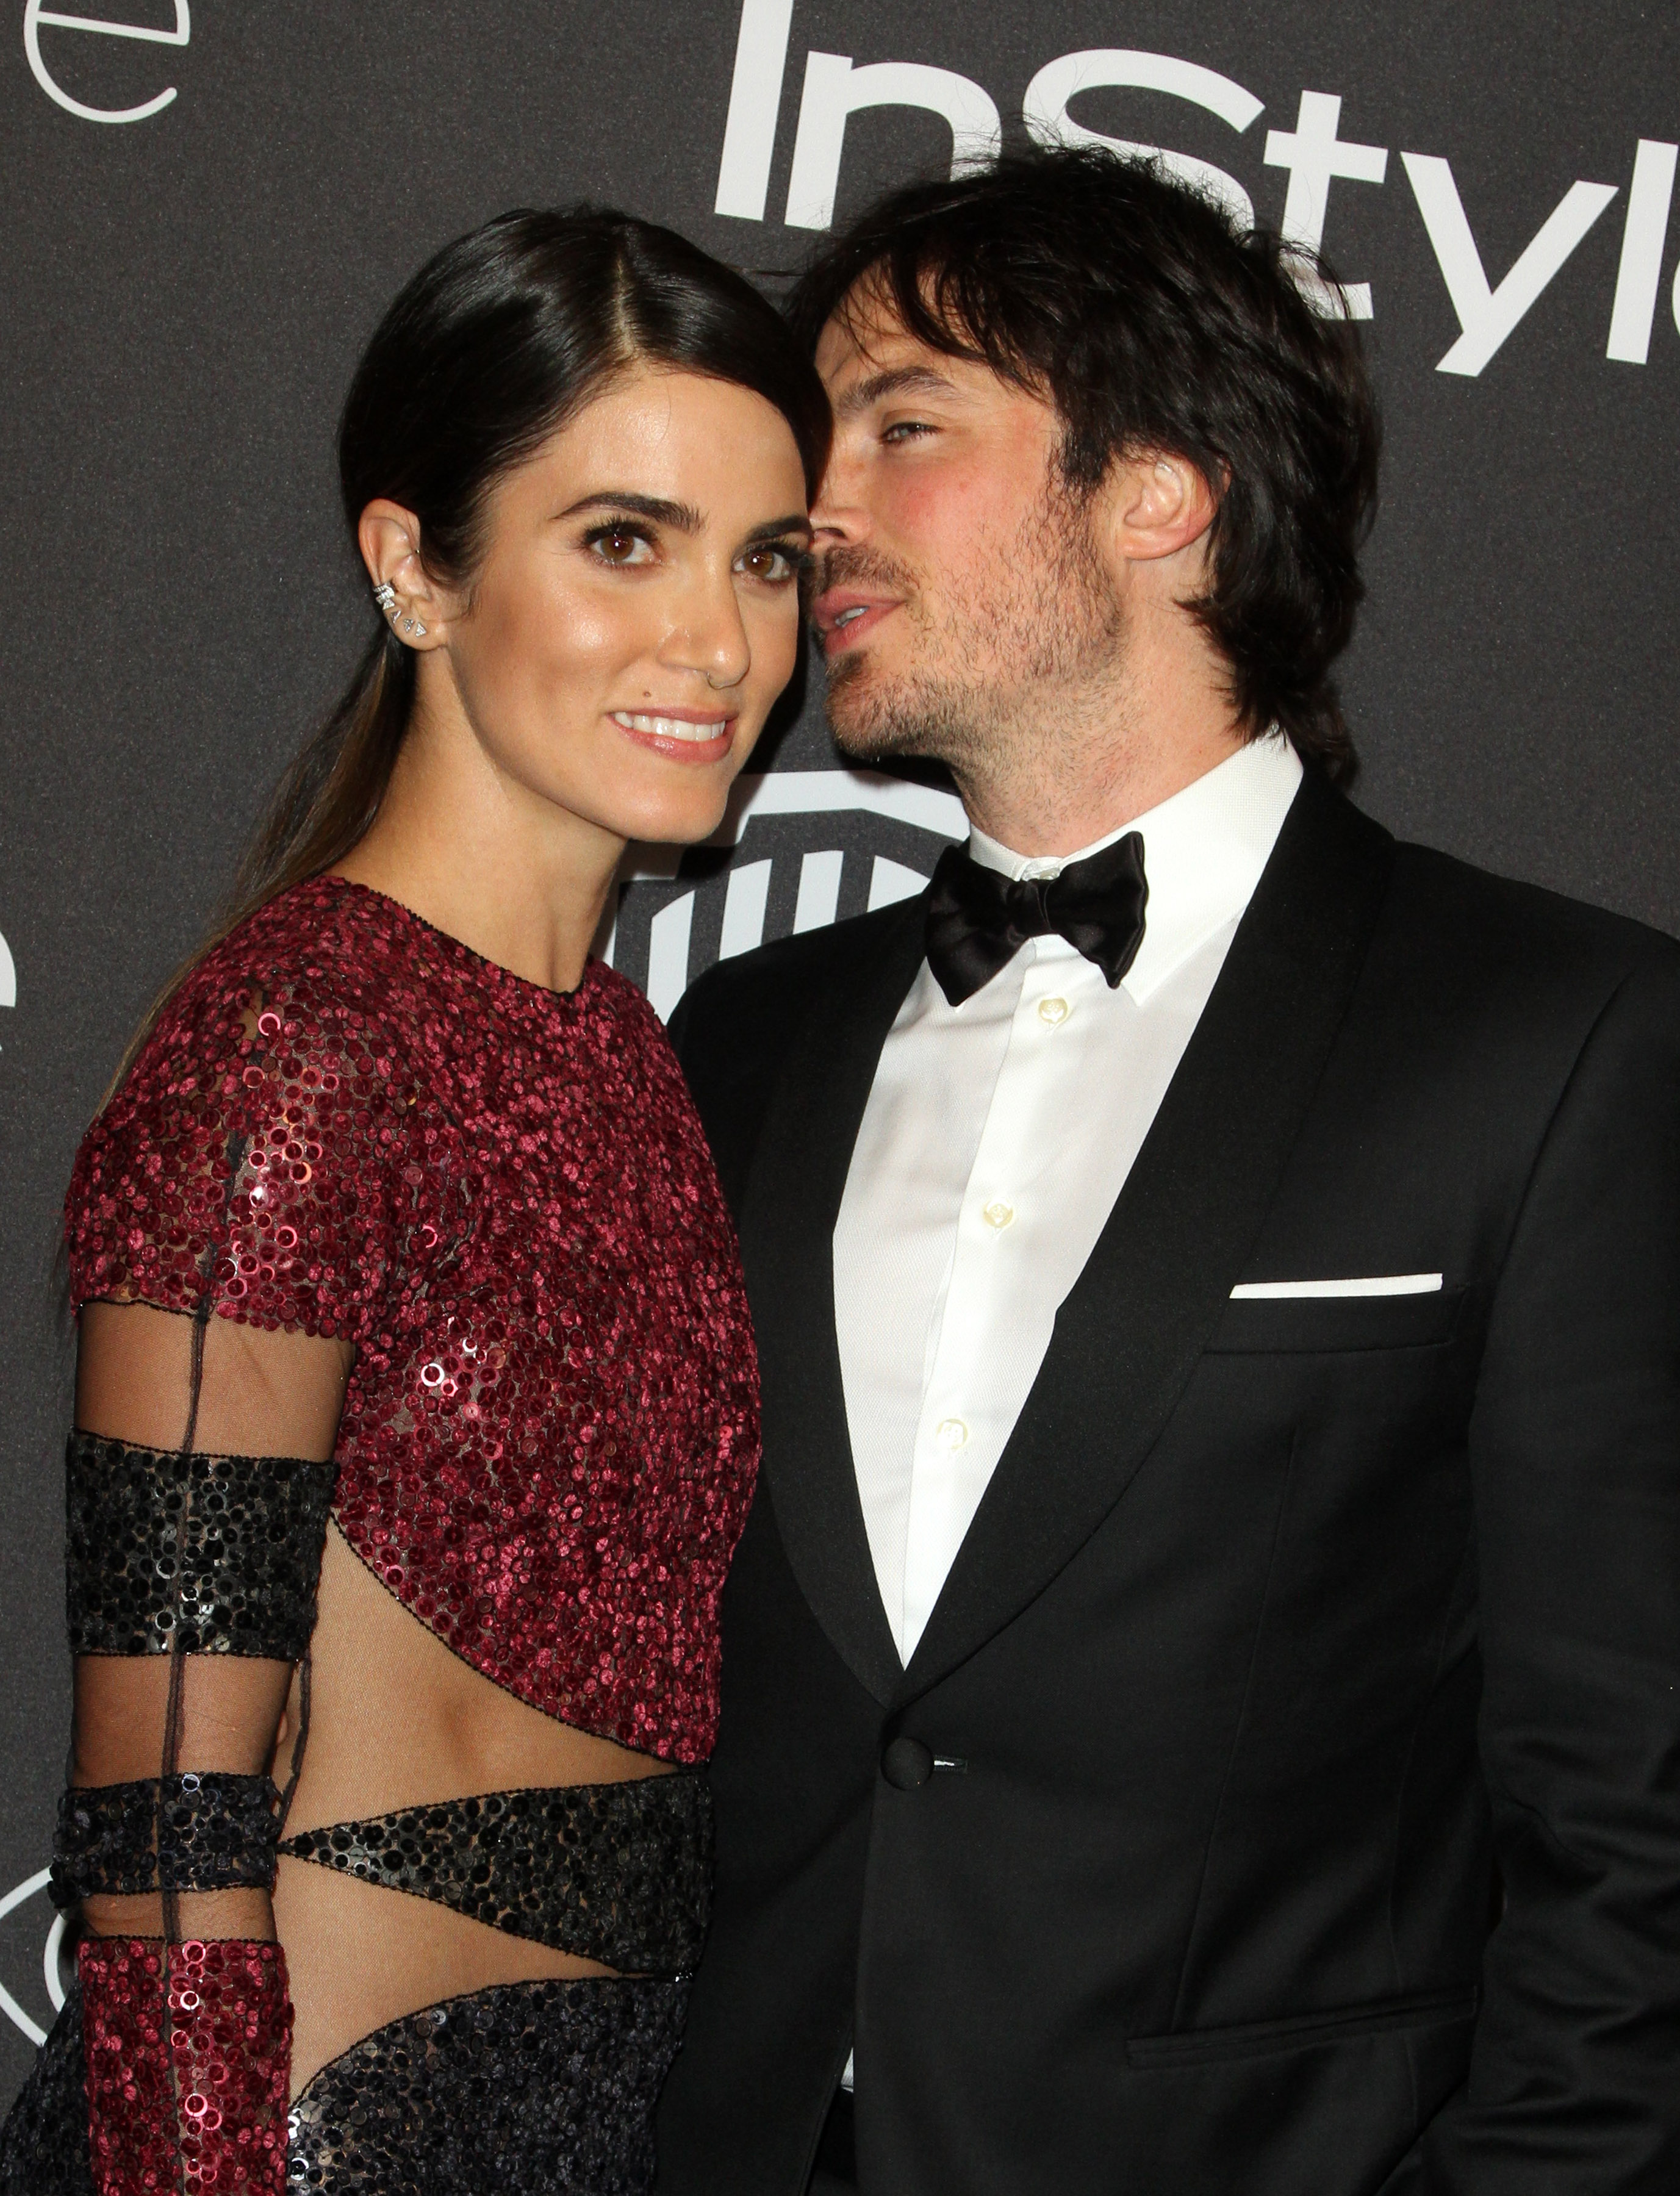 ****File Photos**                                Featuring: Ian Somerhalder, wife Nikki Reed                  Where: Los Angeles, California, United States                  When: 09 Jan 2017                  Credit: Adriana M. Barraza/WENN.com